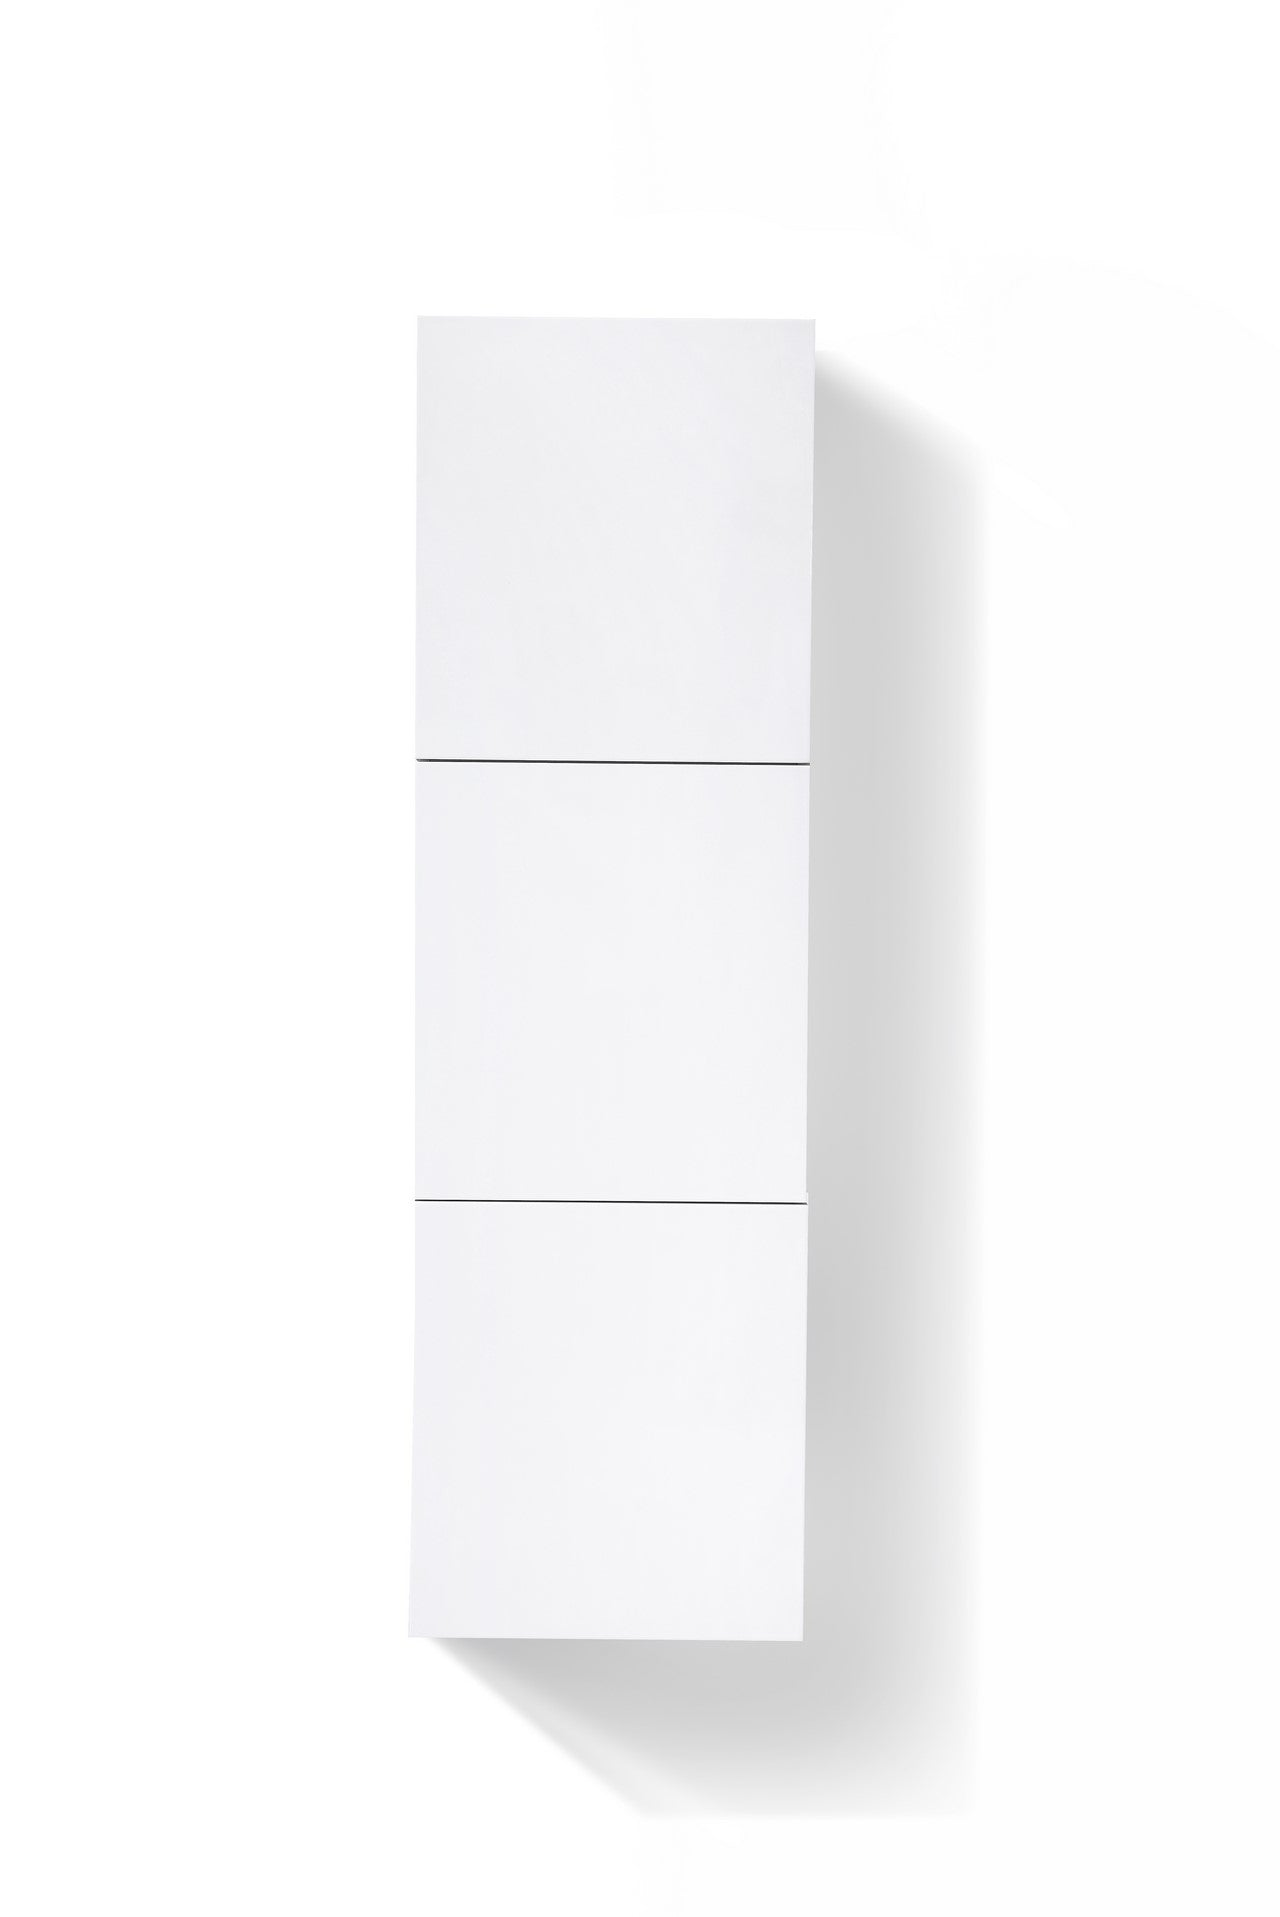 "59"" High Bathroom Linen Side Cabinets, High Gloss White - Vanity Sale"